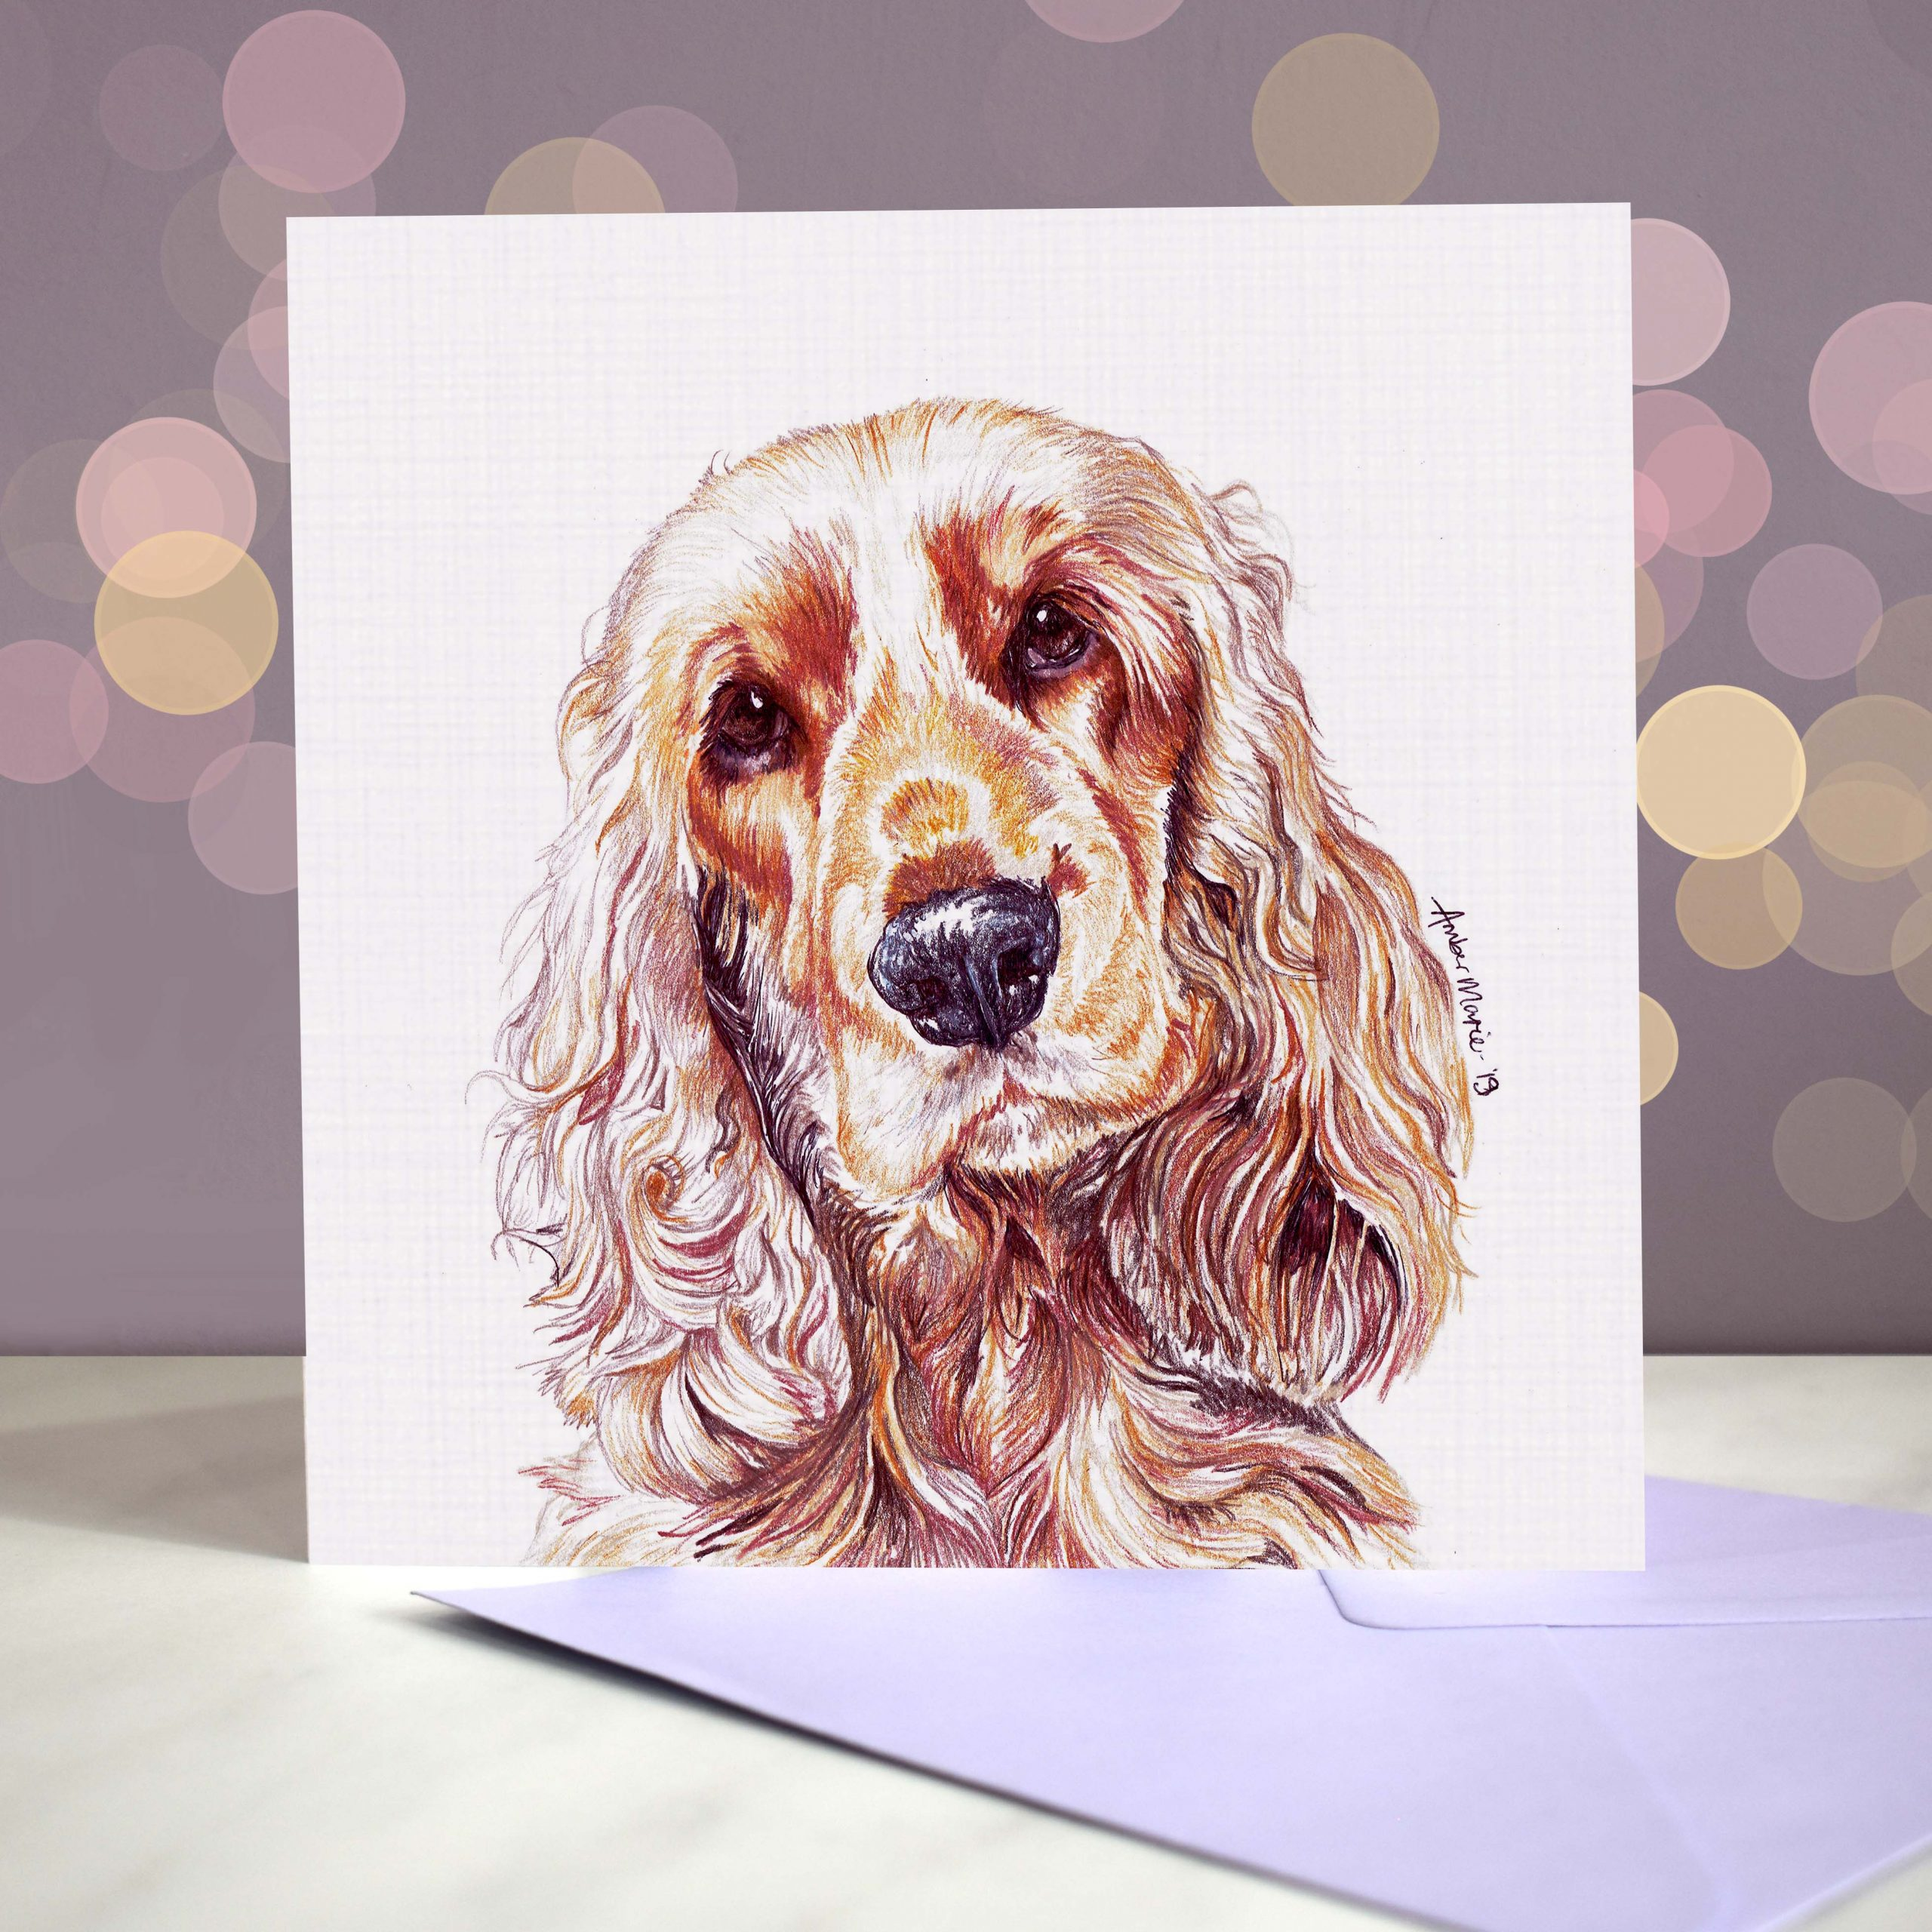 Bokeh Background 6×6 Cocker Spaniel Show Golden